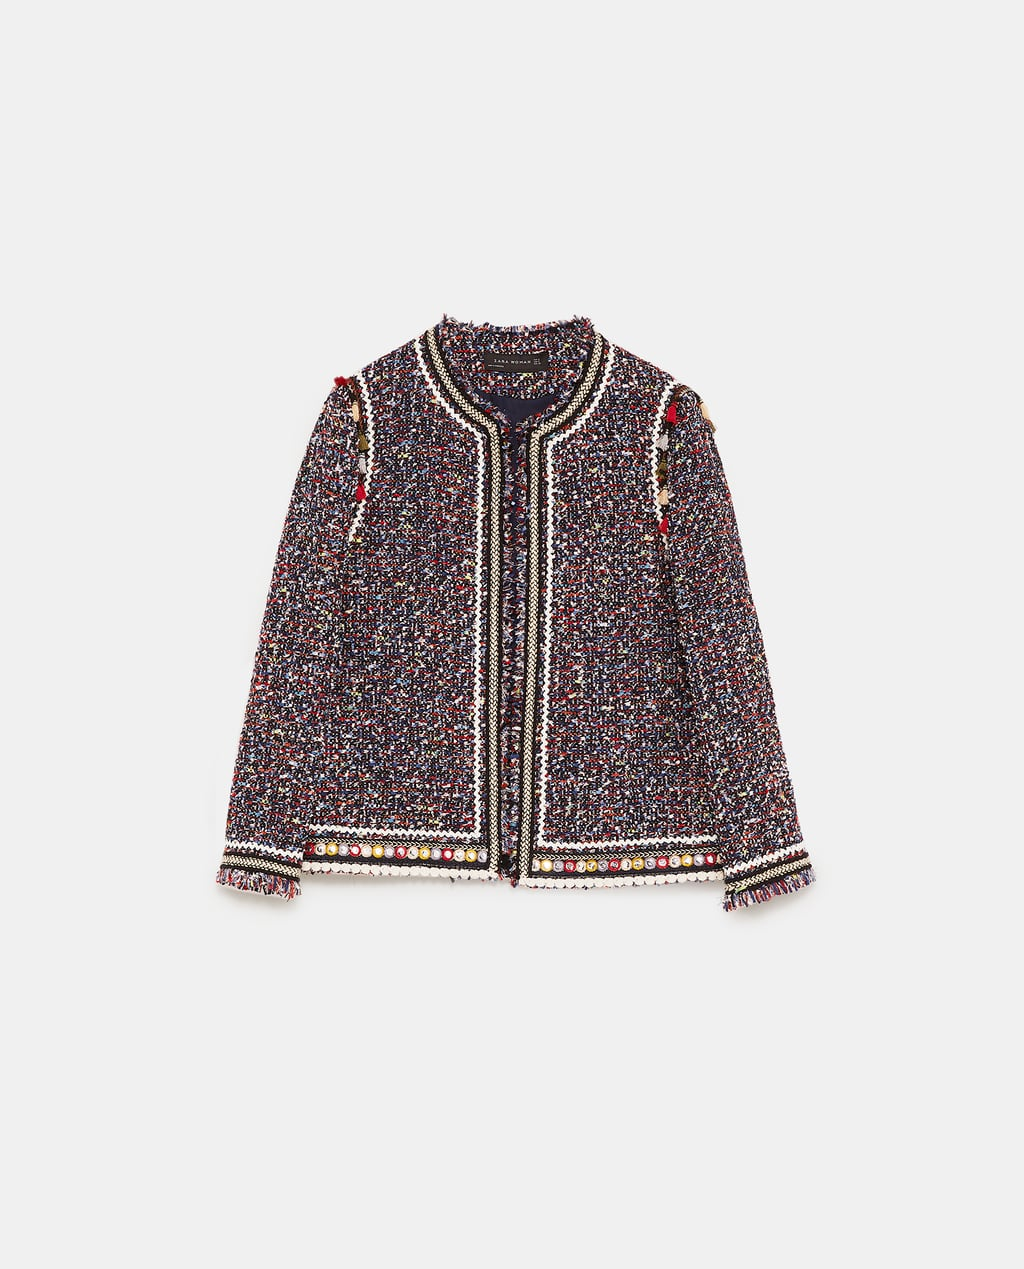 The Best Chanel Style Jackets on the Internet